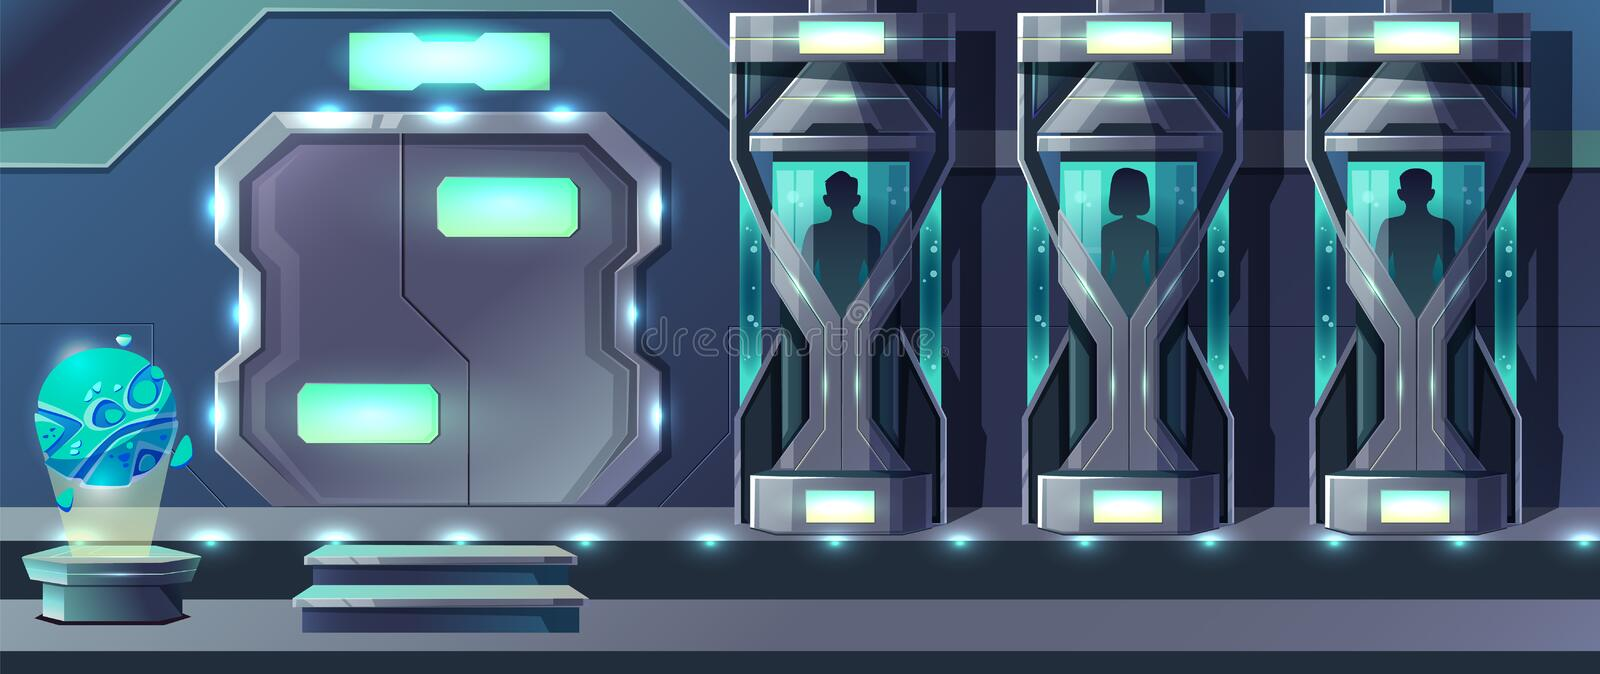 Human cloning laboratory cartoon vector concept. Human cloning cartoon vector with female and male human beings growing in glass capsules in laboratory royalty free illustration